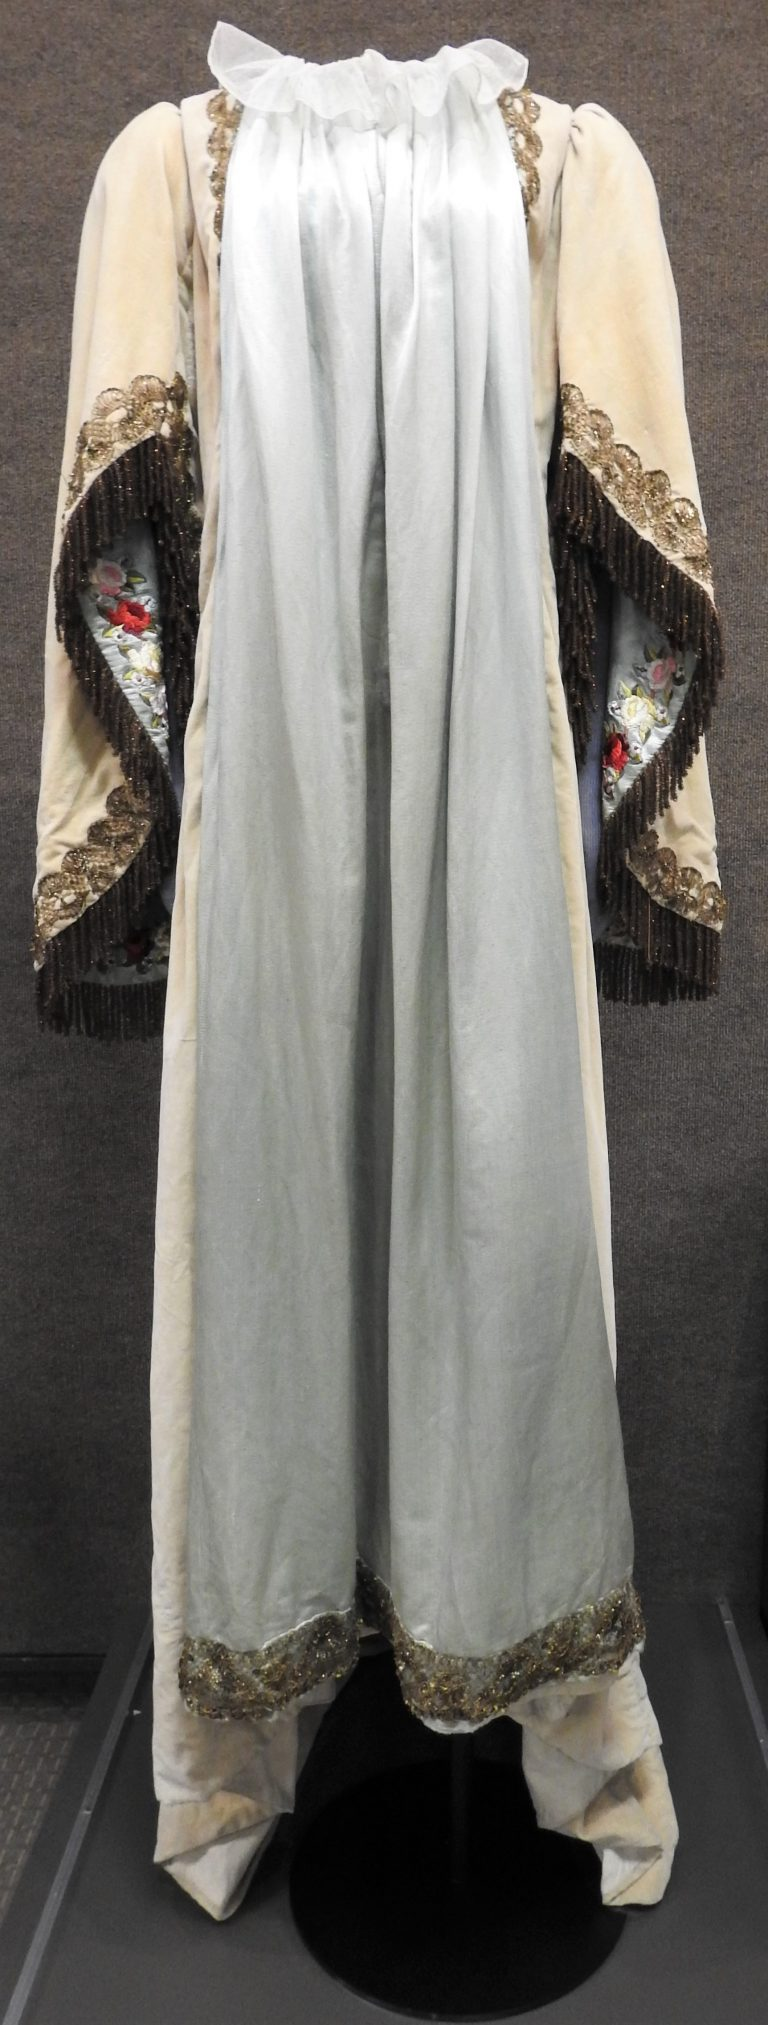 The Order of Pythian Sisters' Robe, ca. 1910. Generously Donated by Mrs. J.G. Weinzinger.